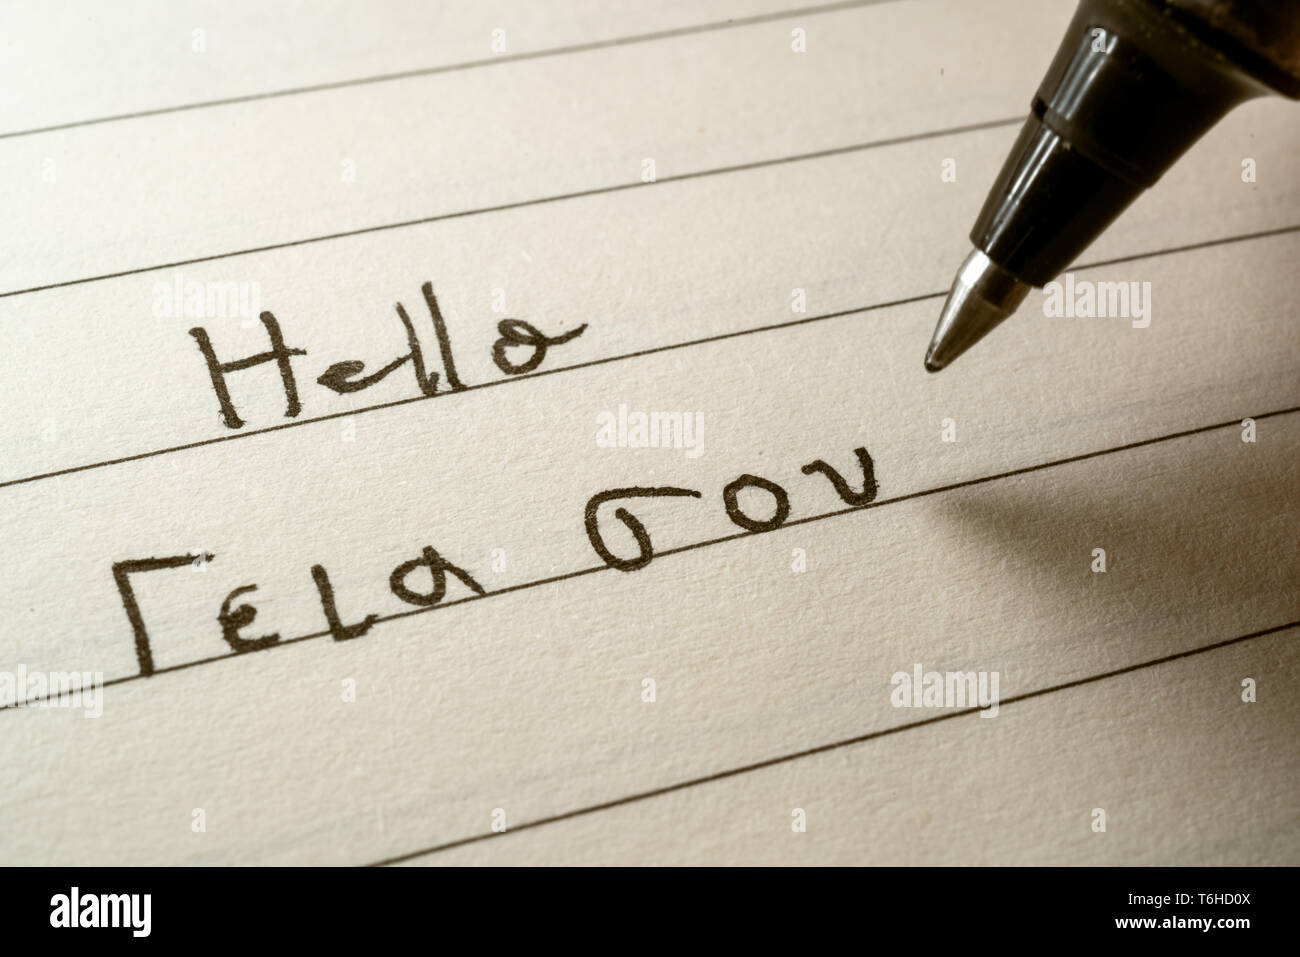 Beginner Greek language learner writing Hello word in greek alphabet on a notebook close-up shot - Stock Image